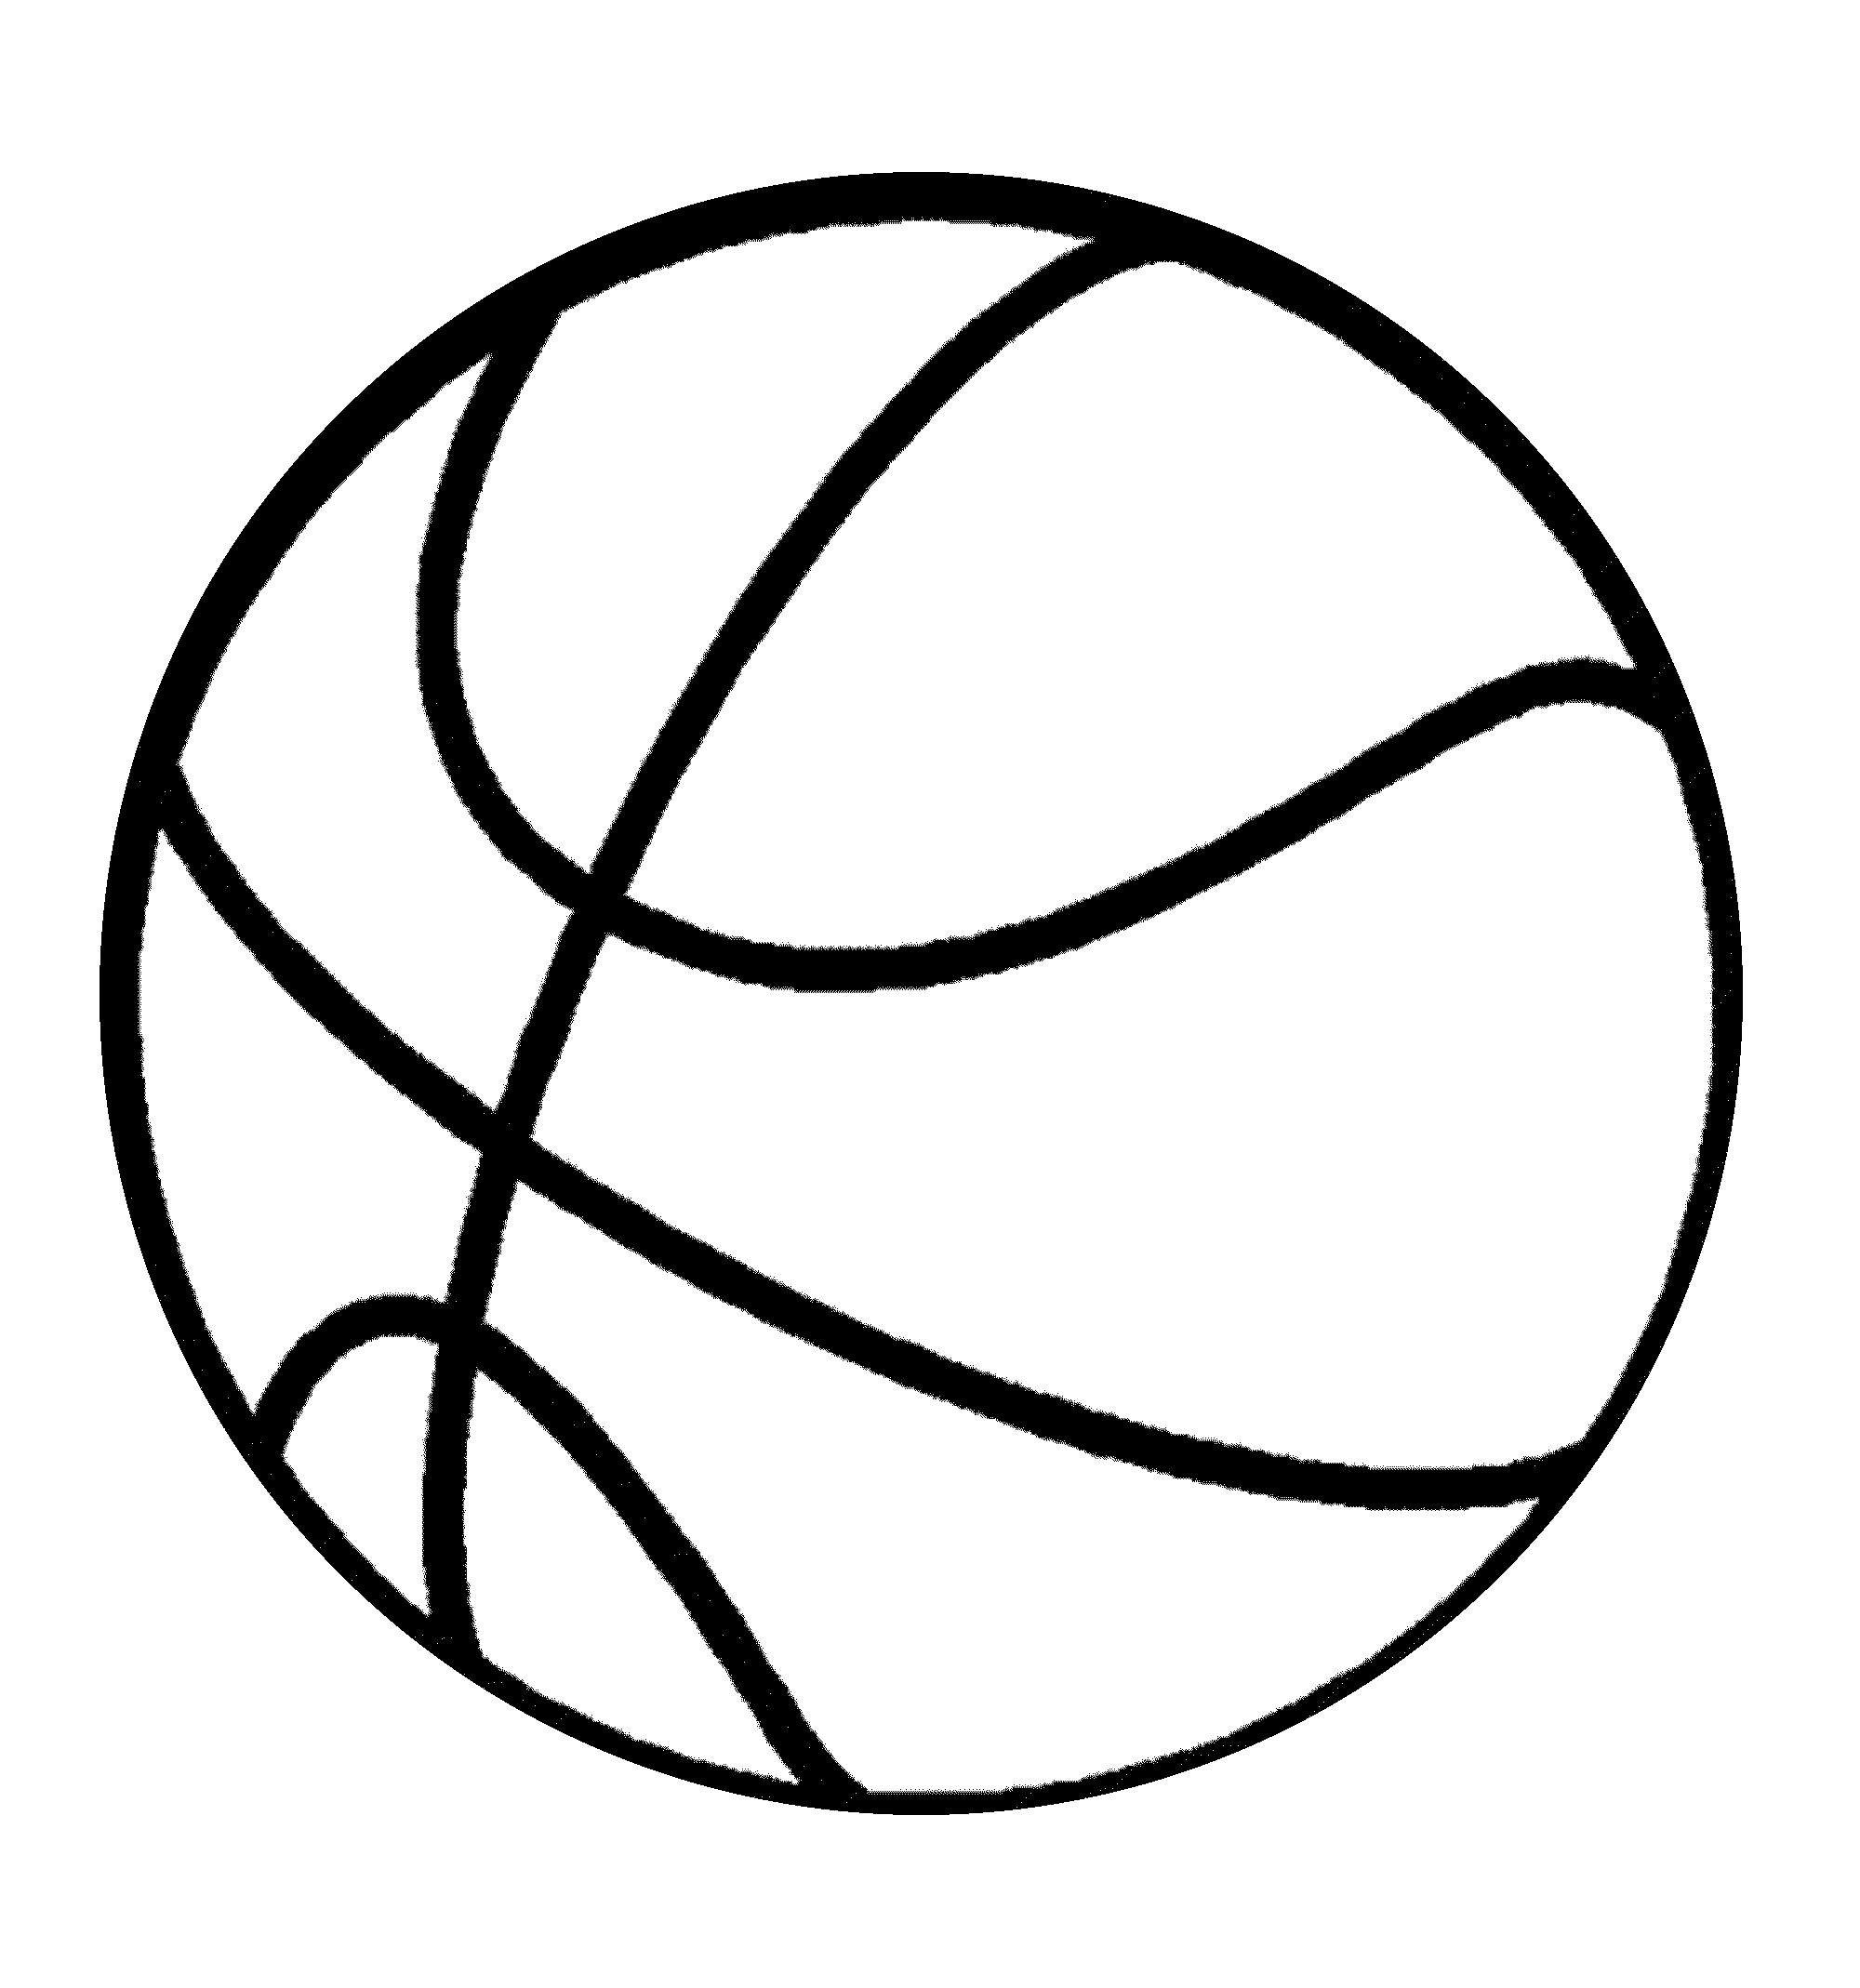 basketball pictures to color 30 free printable basketball coloring pages to basketball pictures color